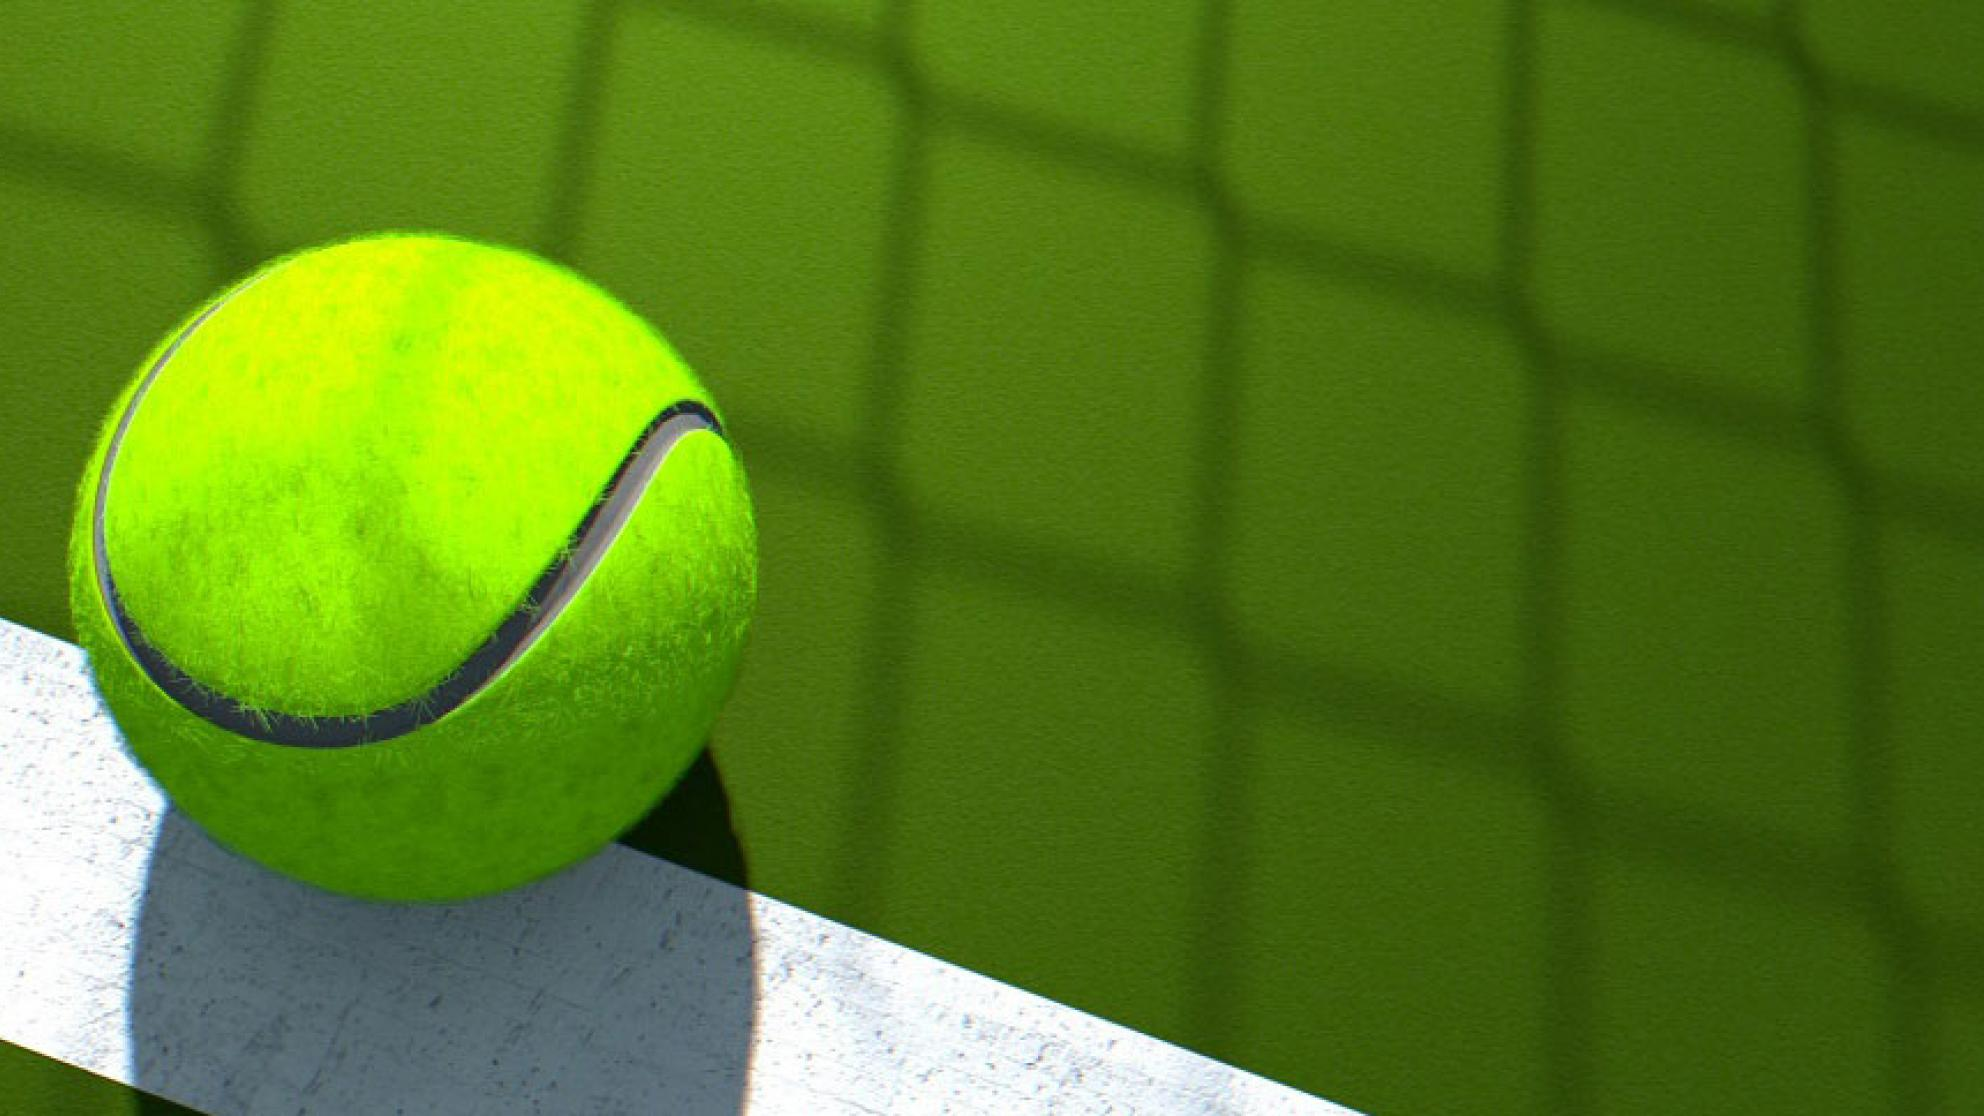 Close up of a tennis ball on a tennis court.